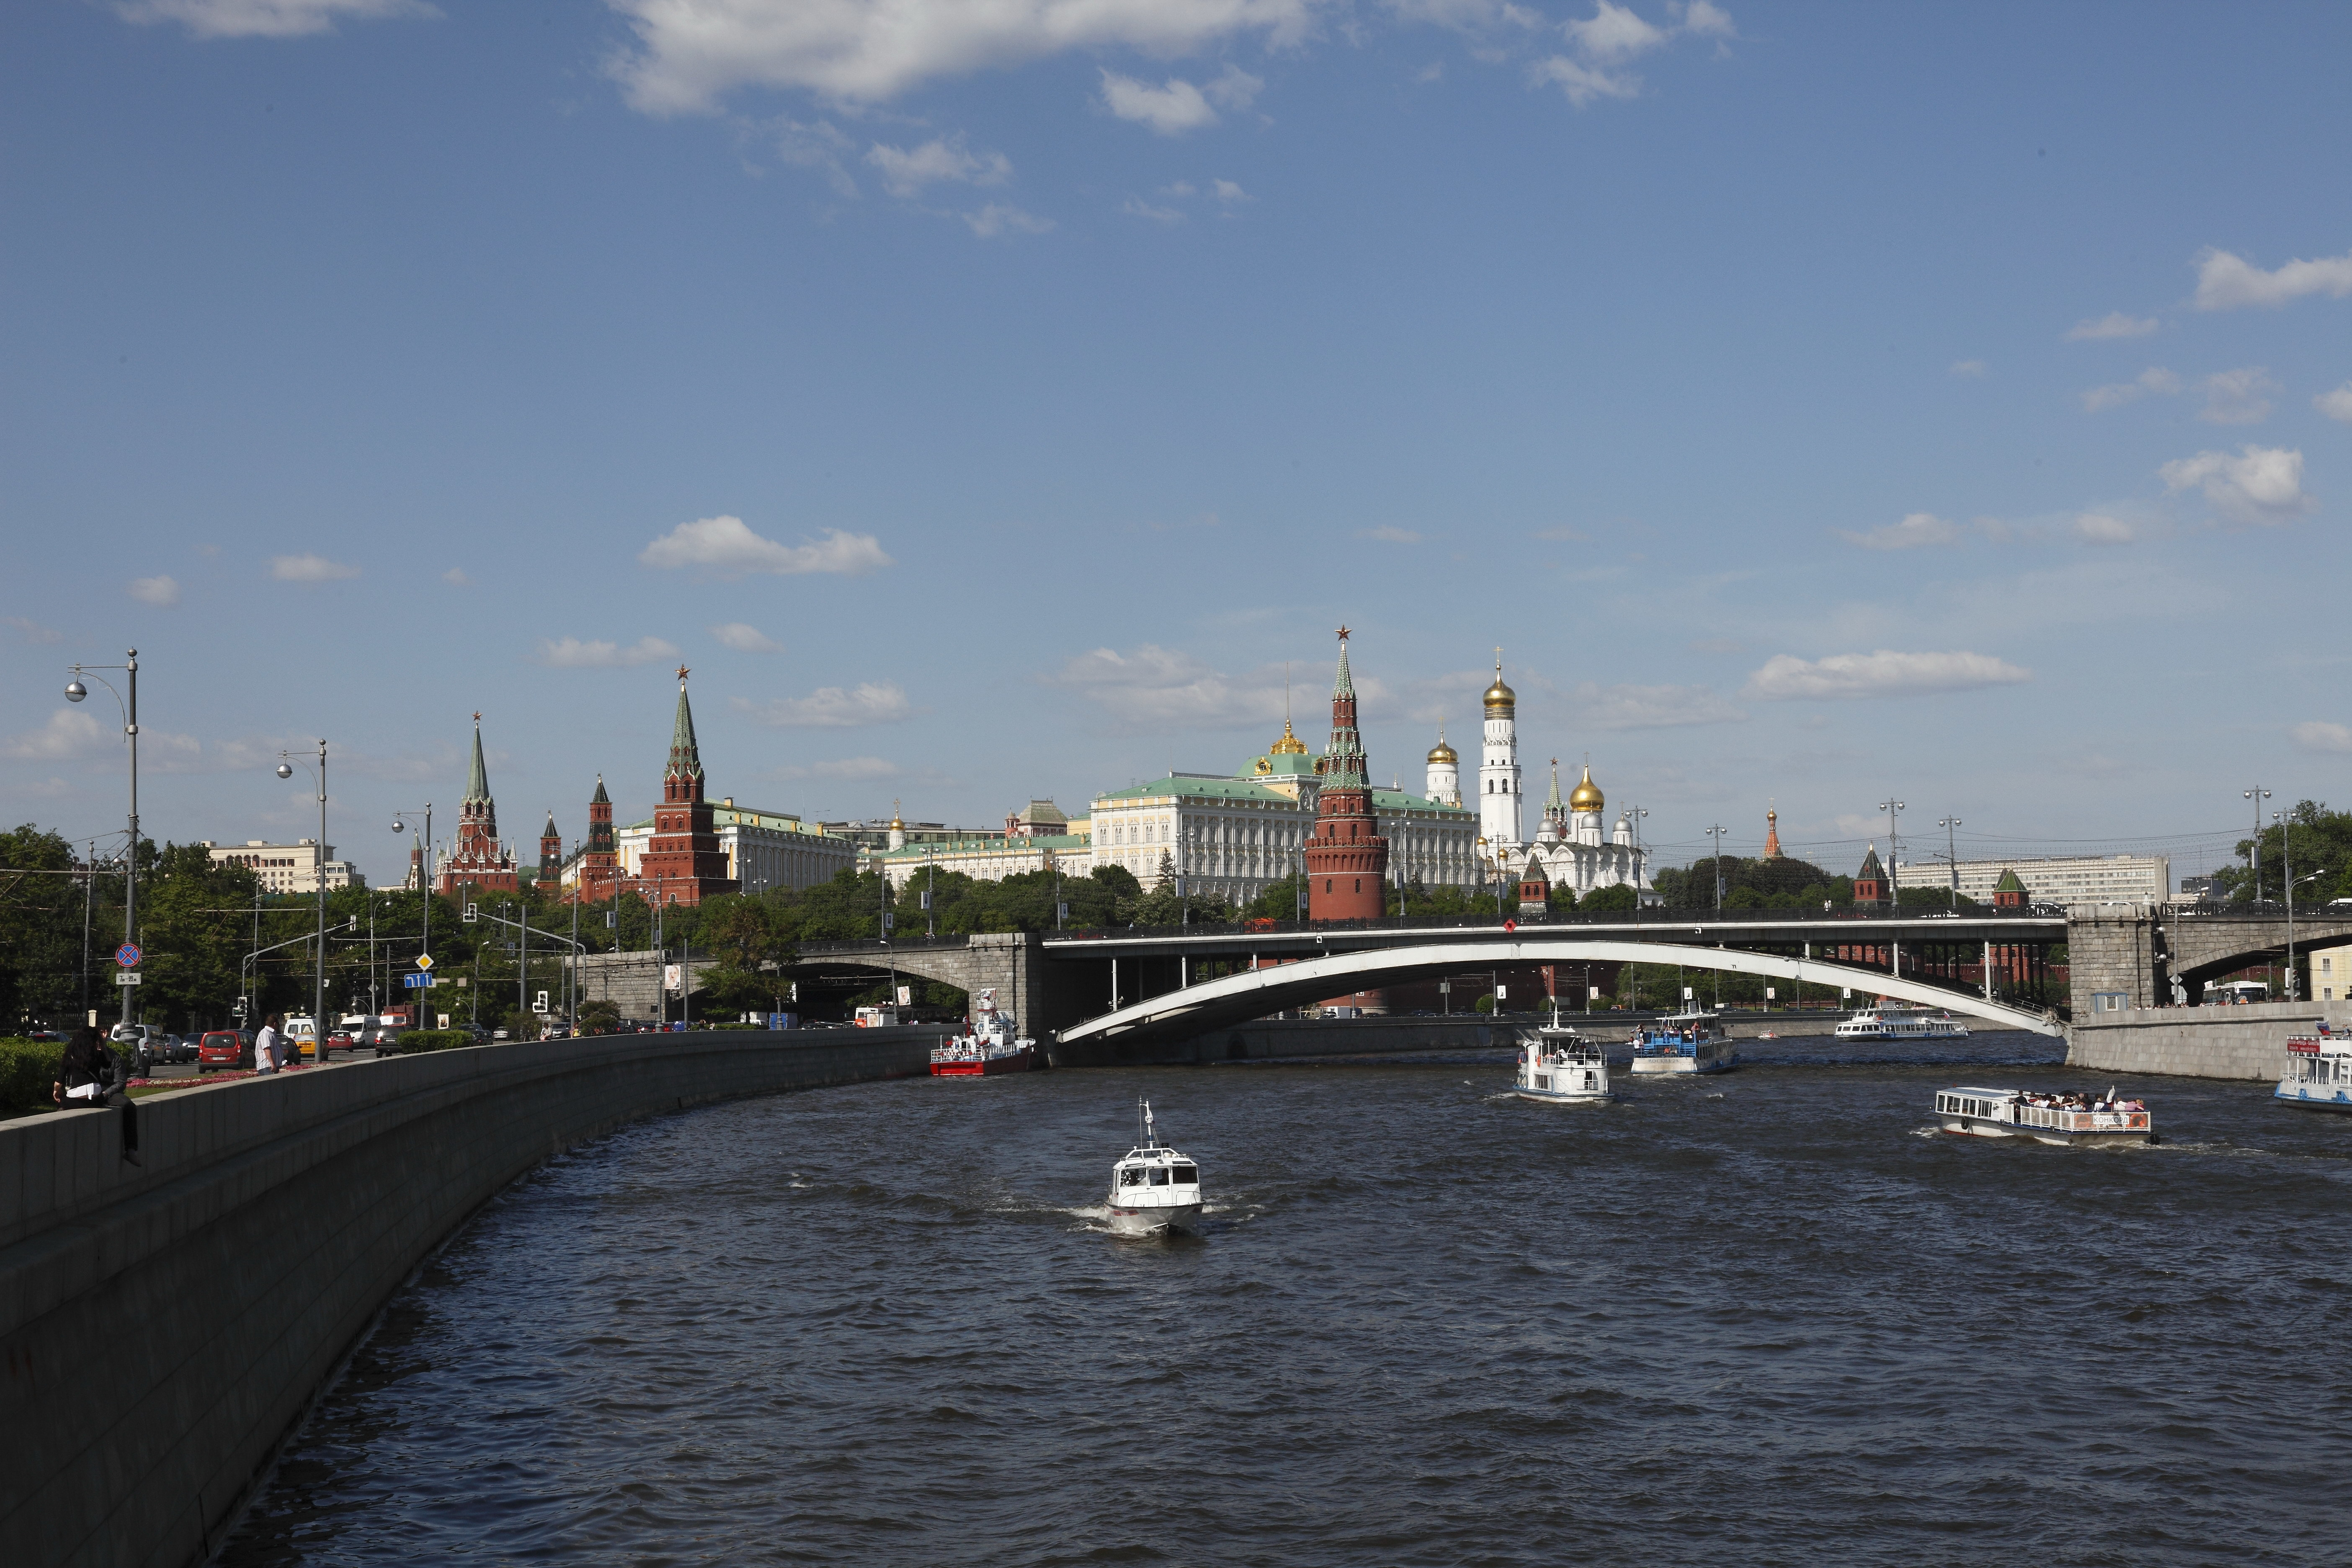 Russia Moscow rivers cities HD Wallpaper